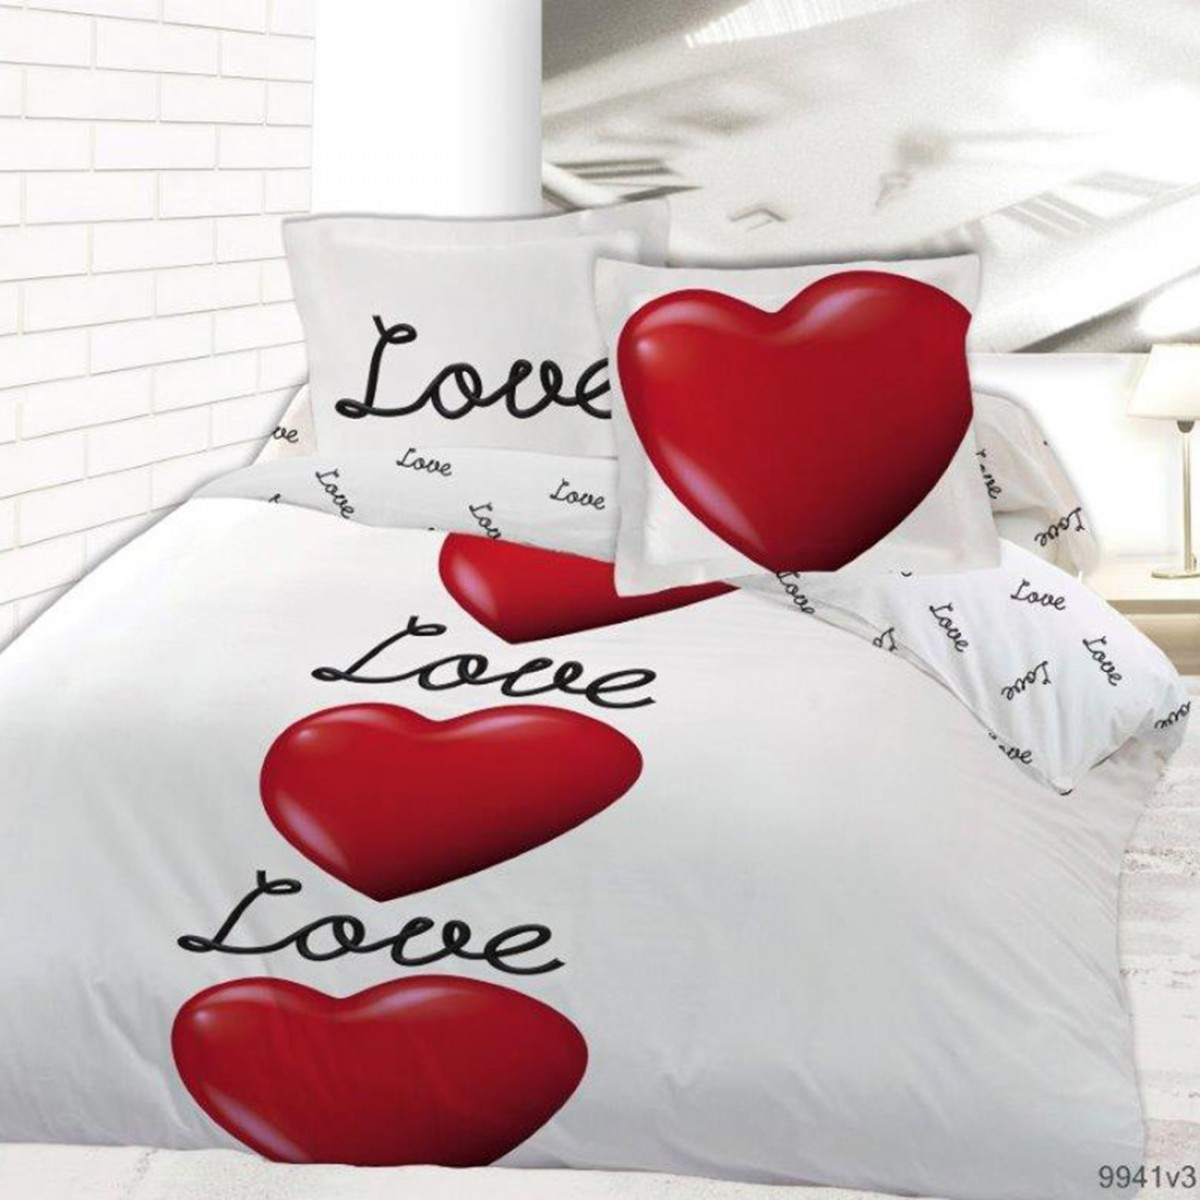 Housse De Couette Unie 200x200 Housse De Couette Love Is In The Air 200x200 Les Douces